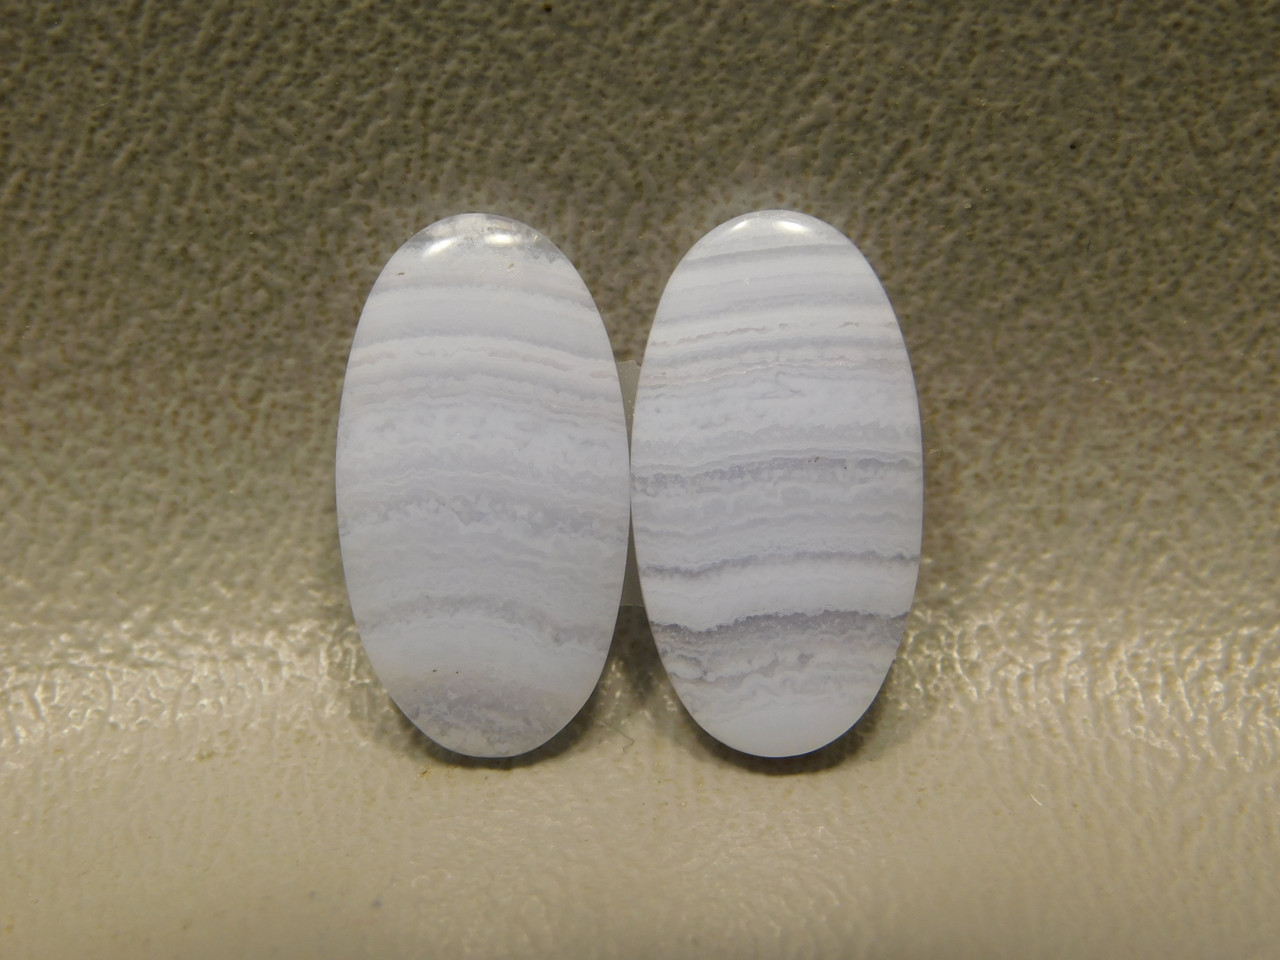 Ovals Stone Cabochons Blue Lace Agate Matched Pairs #8